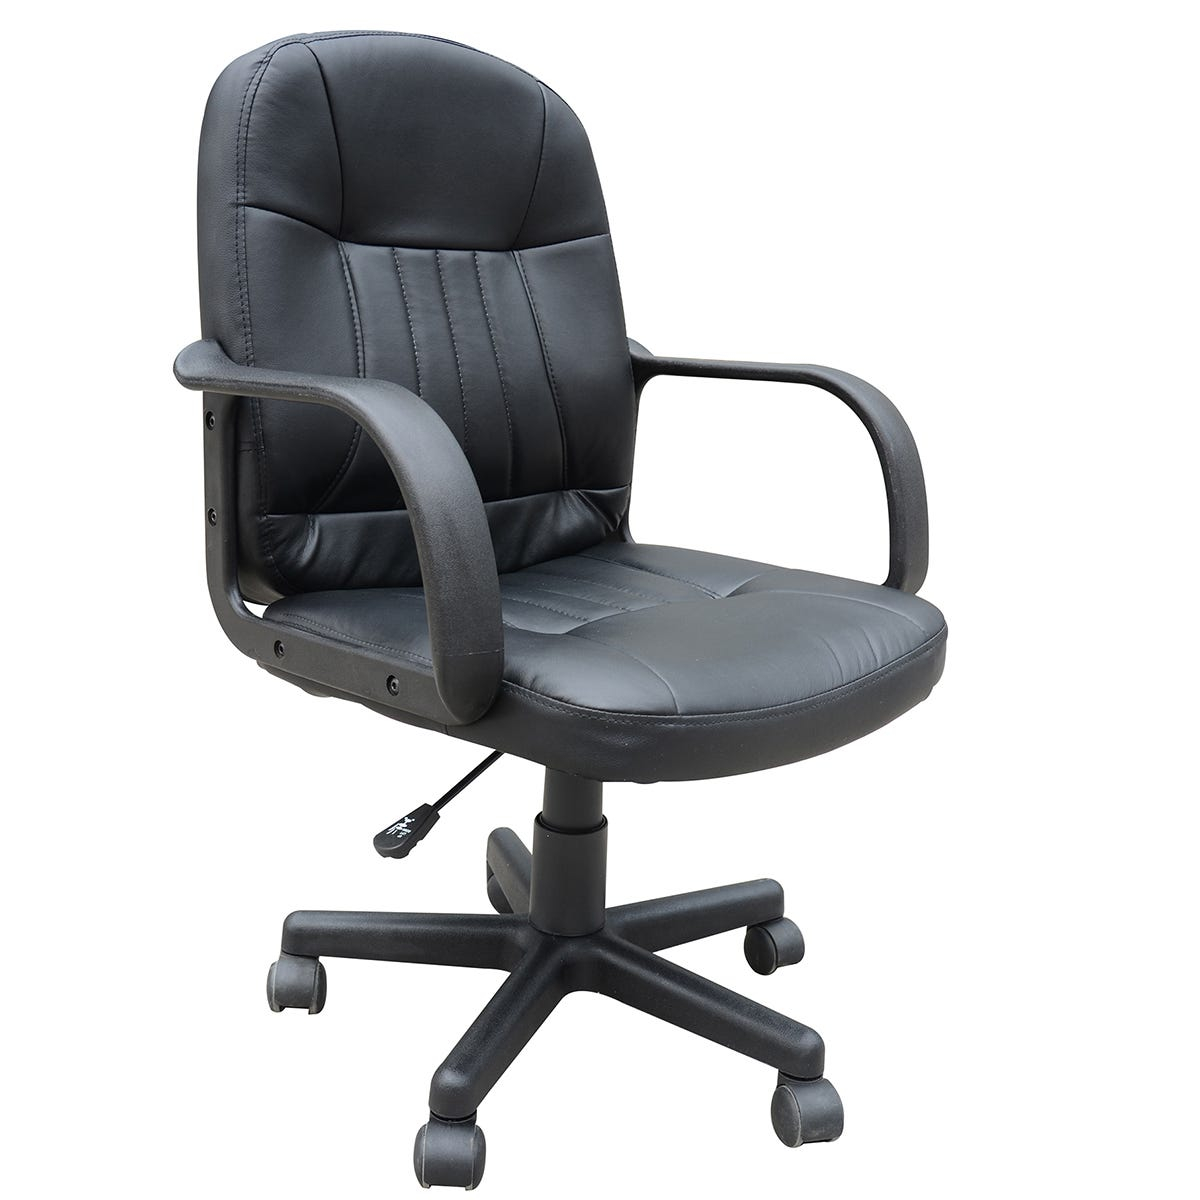 Zennor Mondo PU Leather Low Back Office Chair - Black